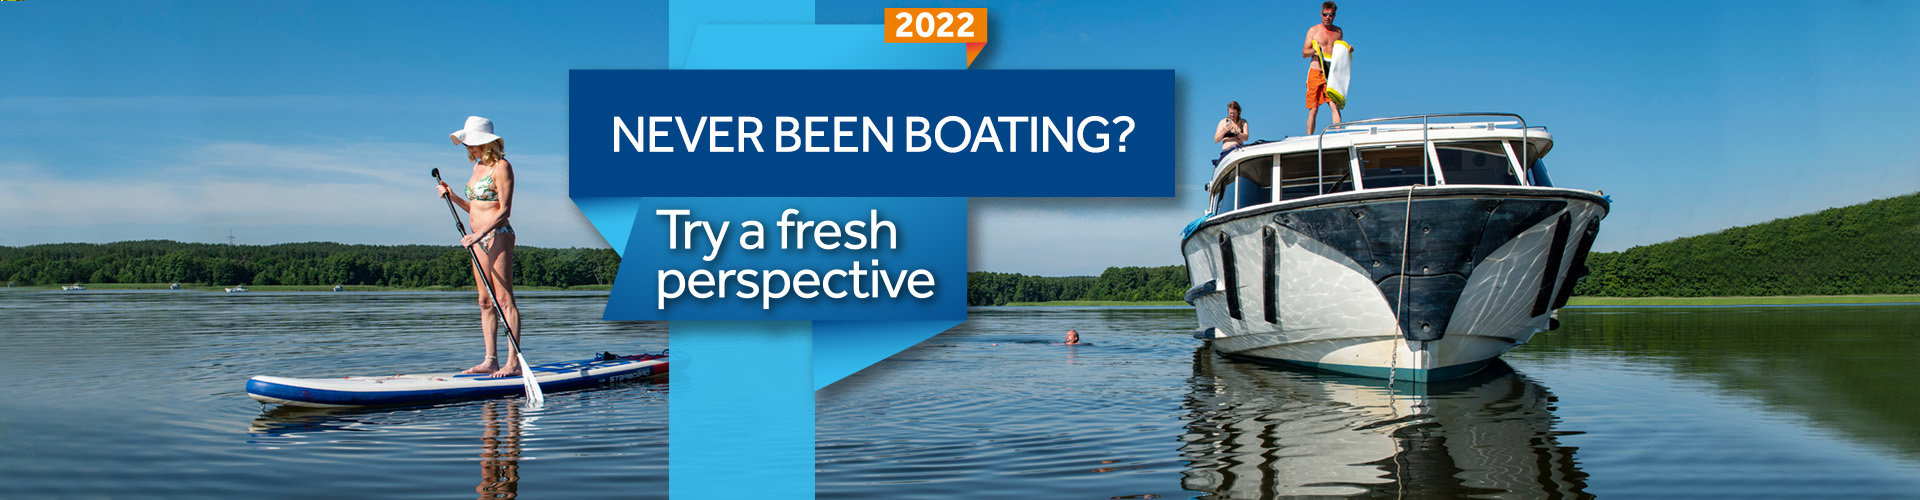 New to boating - try a fresh perspective